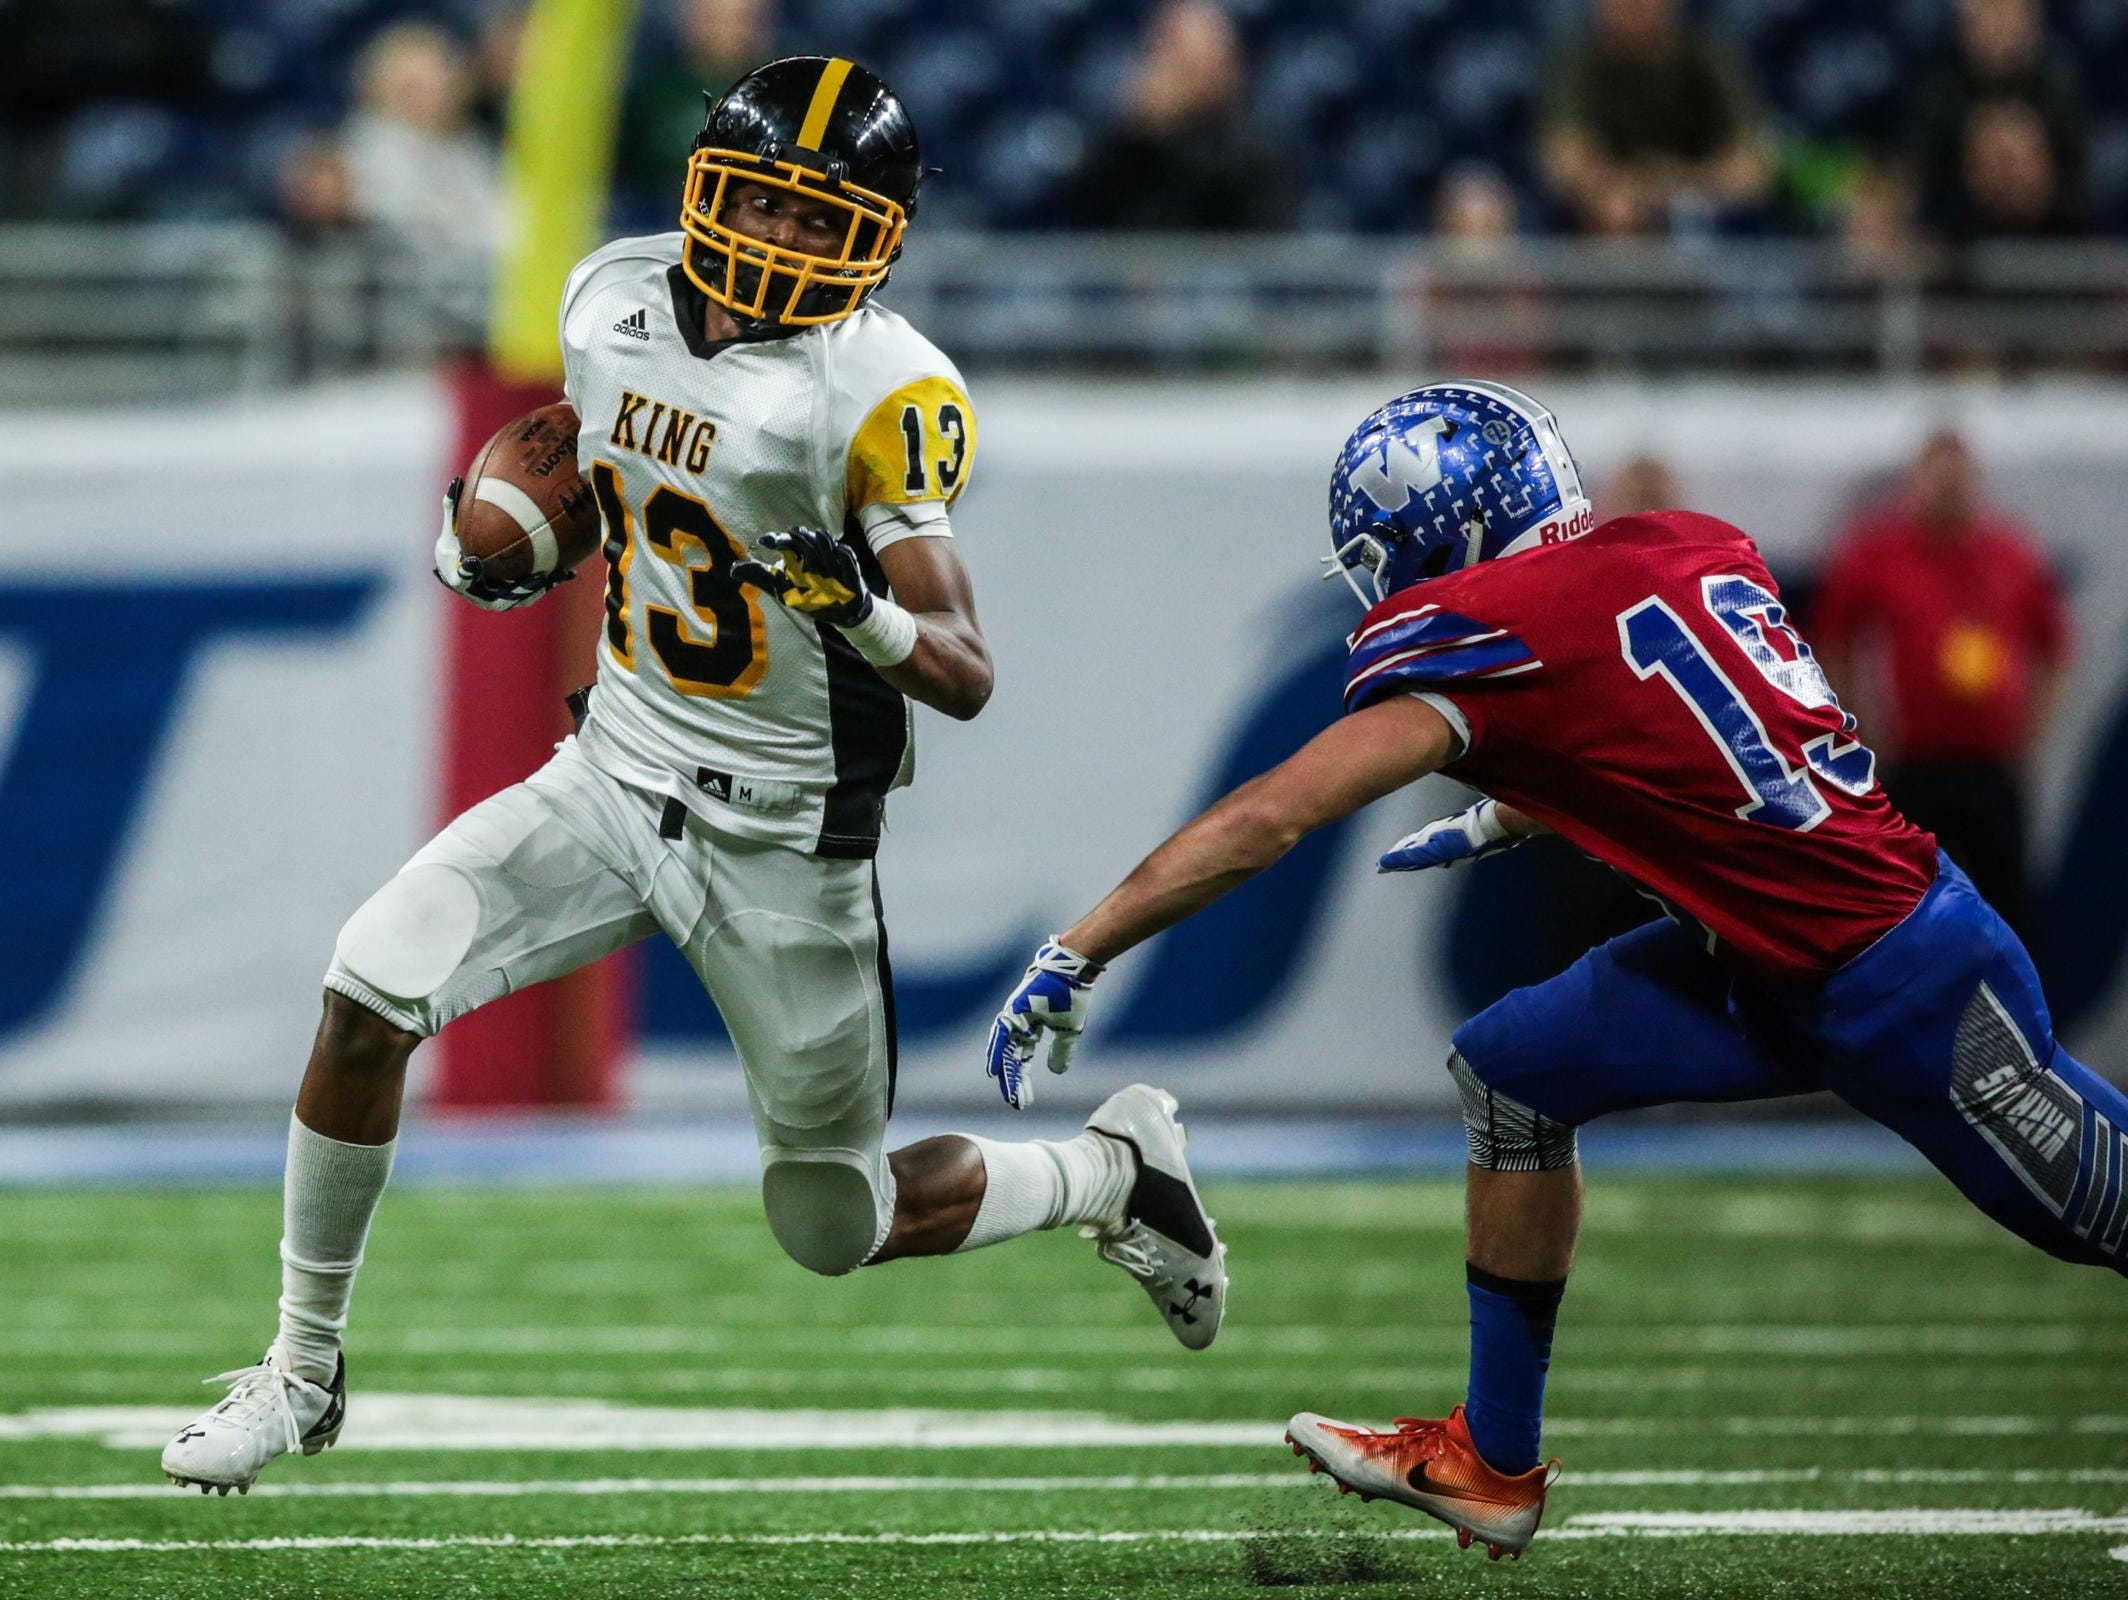 Detroit King's Ambry Thomas runs the ball against Walled Lake Western during King's win in the Division 2 state championship game Friday at Ford Field.